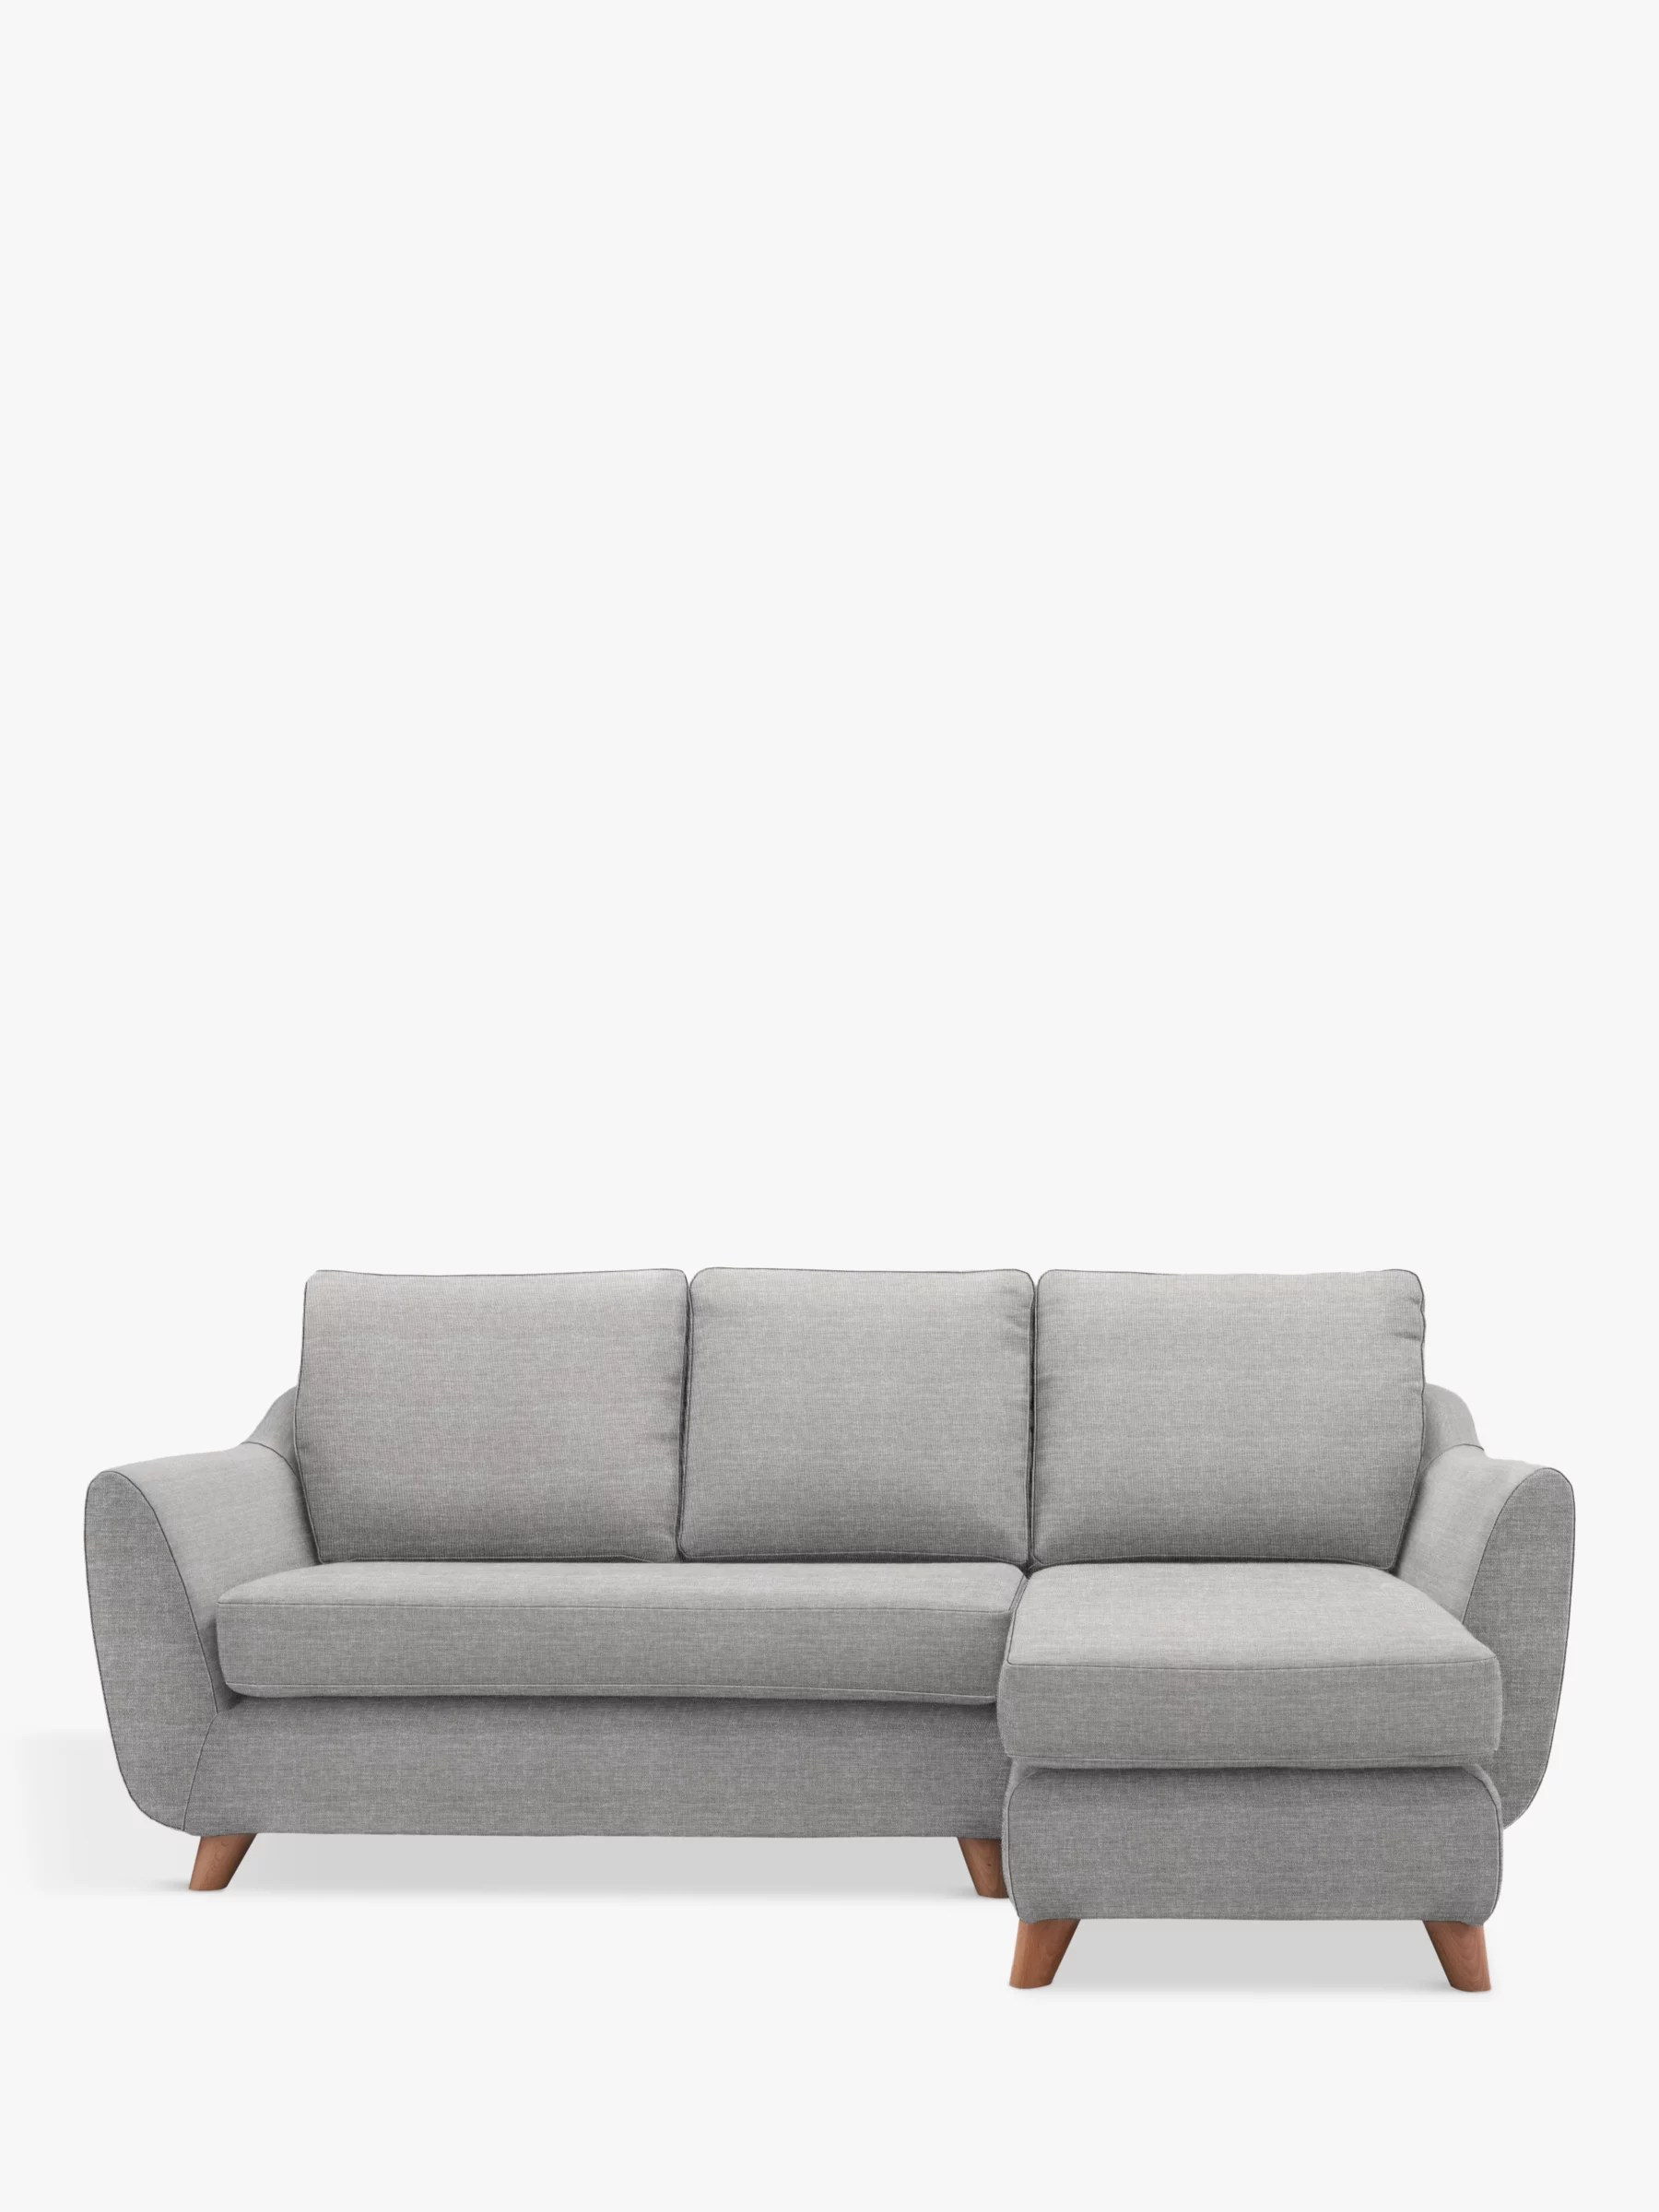 pink sofa browse uk cream leather dfs corner sofas settees john lewis partners g plan vintage the sixty seven rhf chaise end